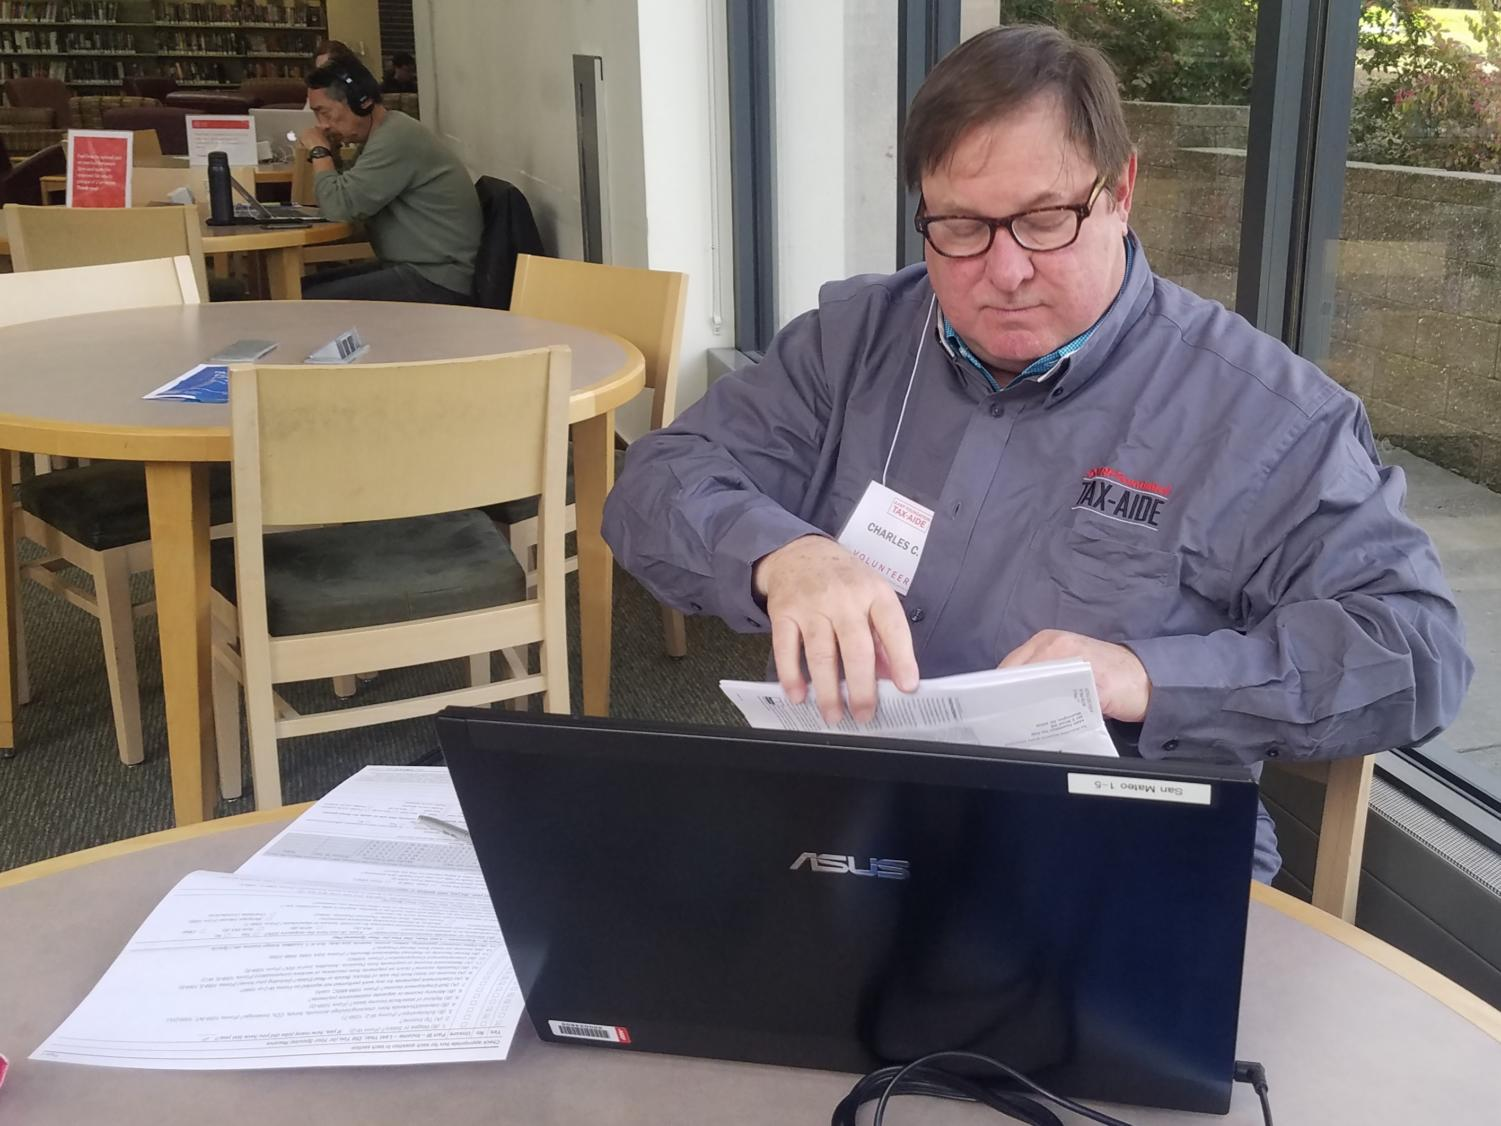 The volunteers sent by AARP help locals ensure their taxes are filed correctly.